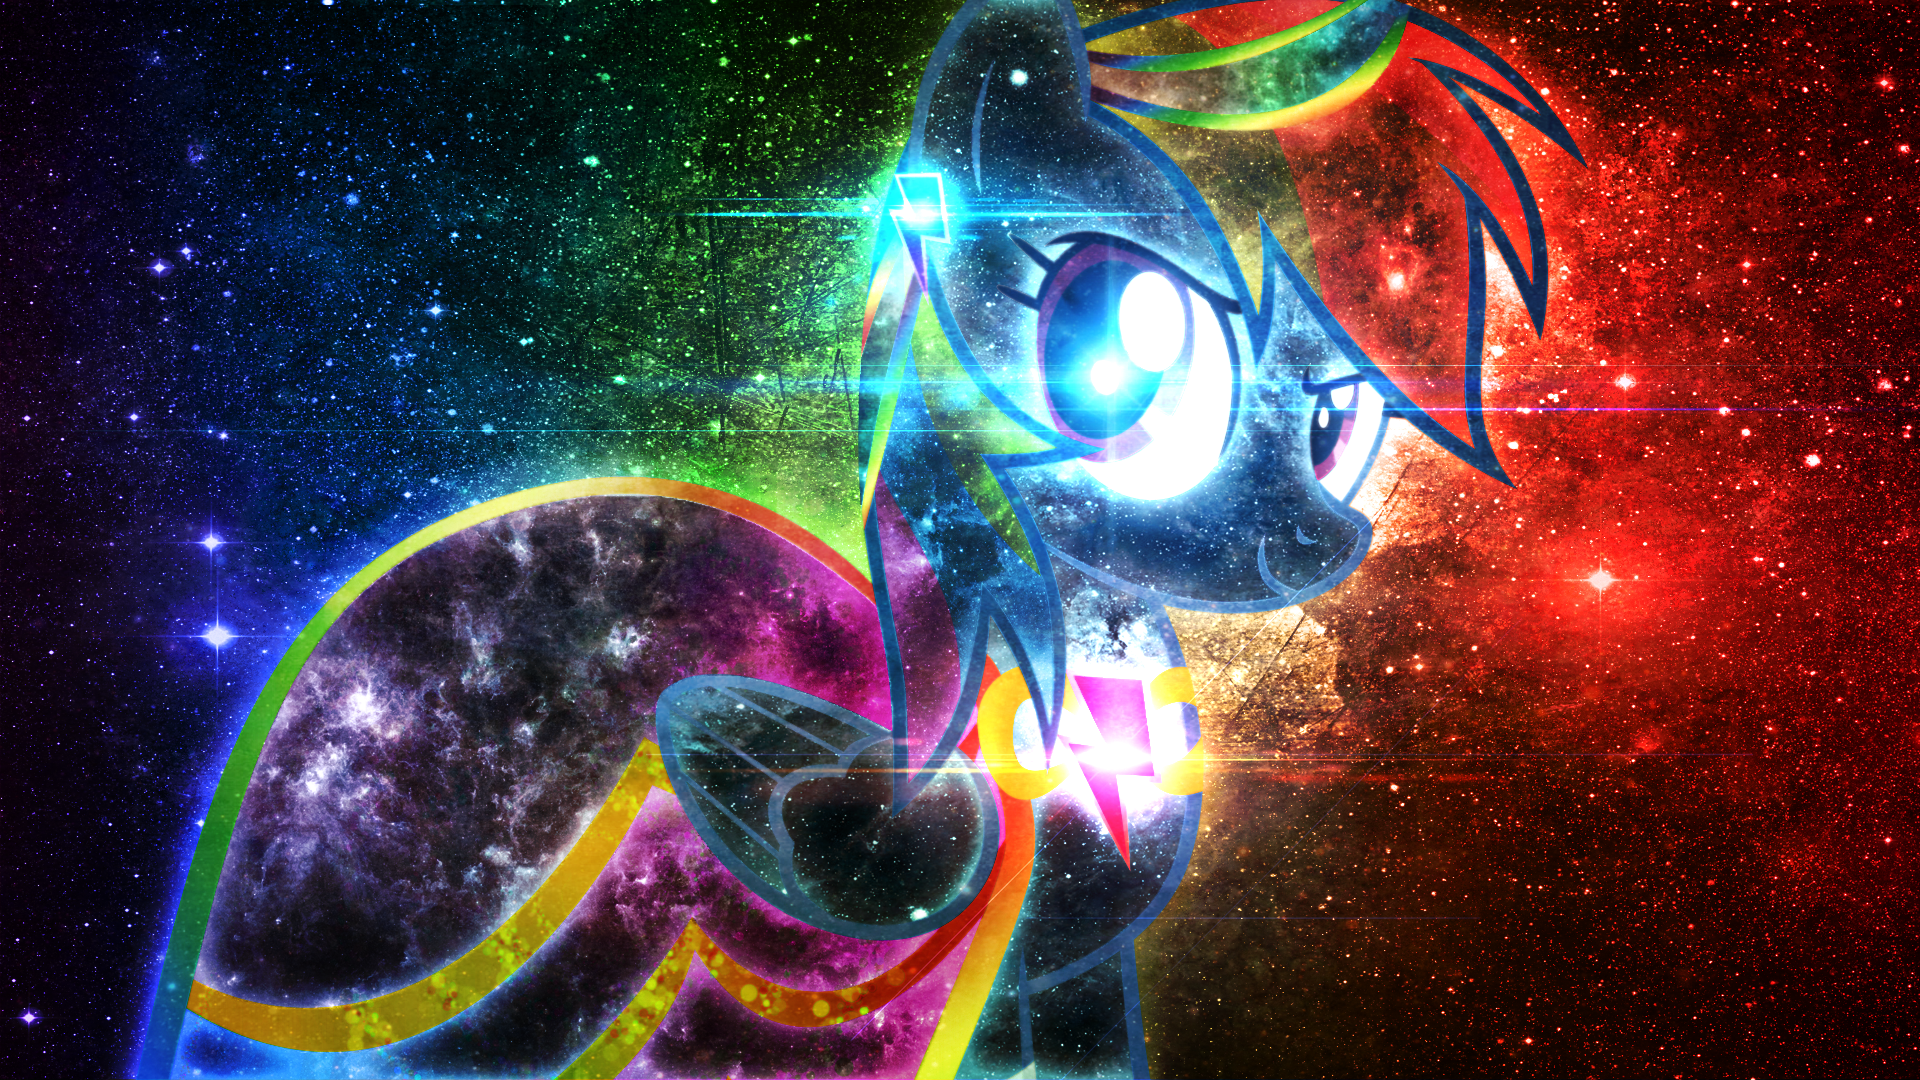 rainbow dash summer dress galactic wallpaper by kibbiethegreat and